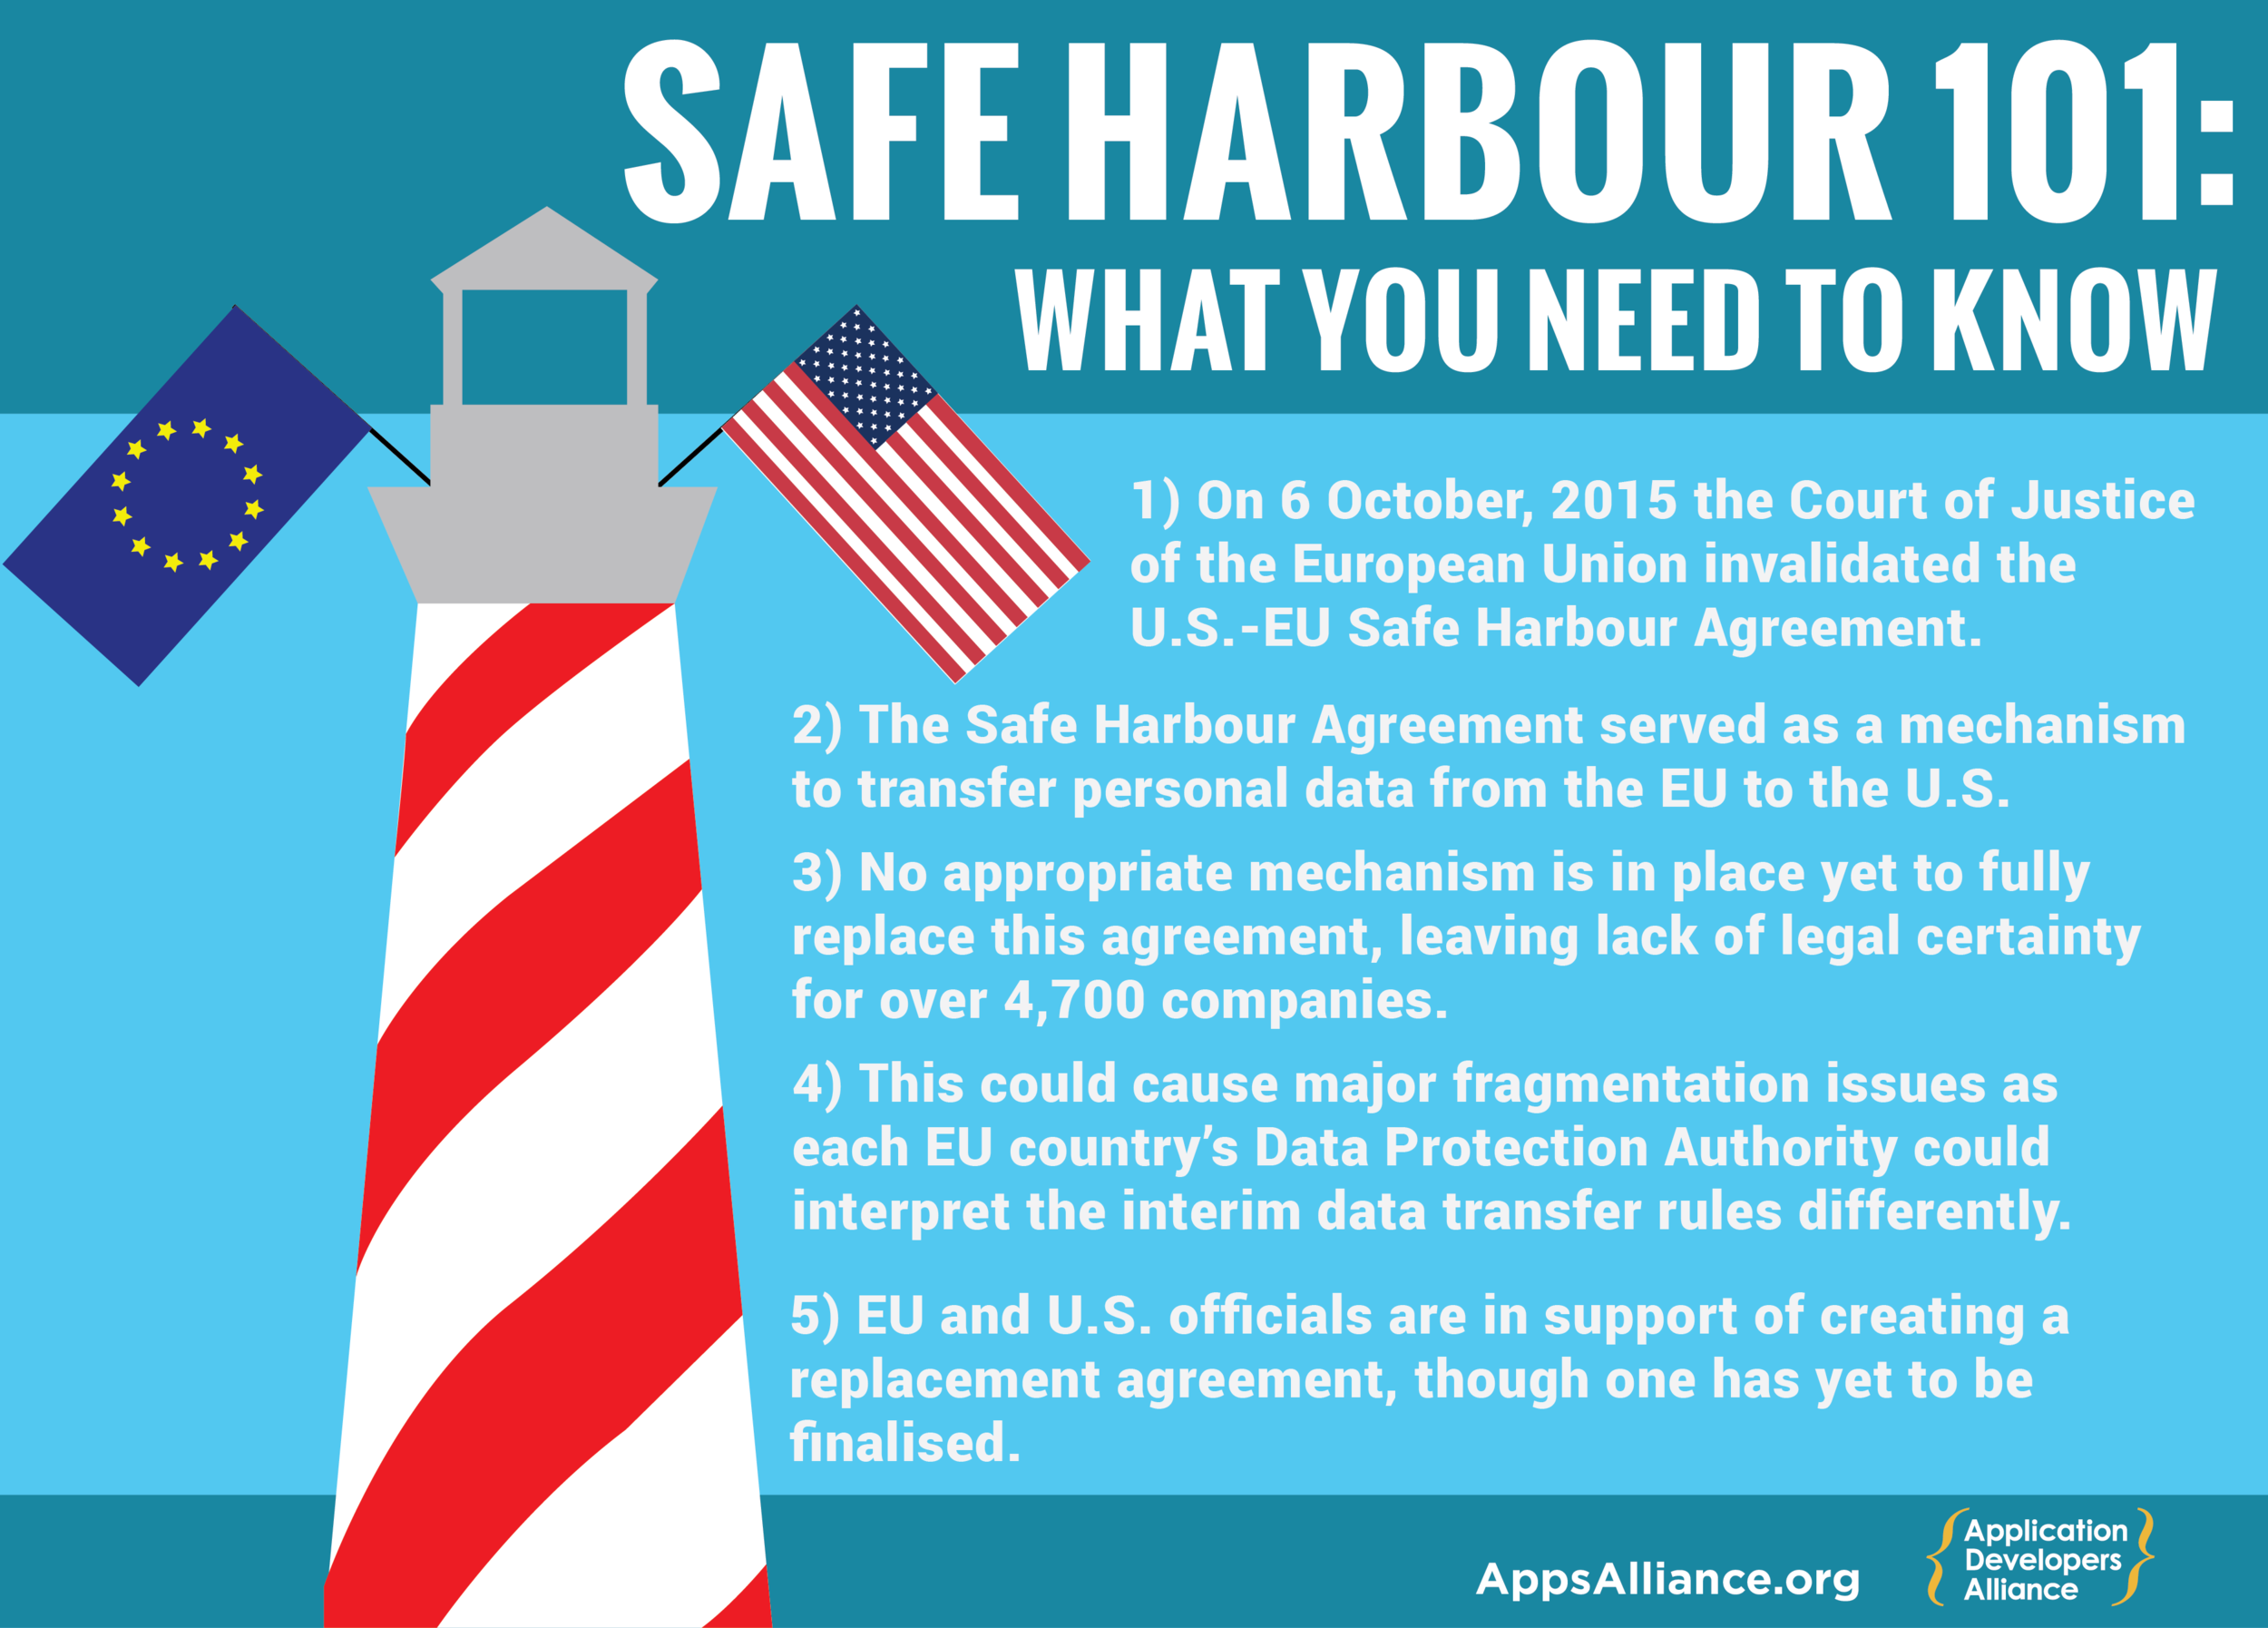 safe harbour 101